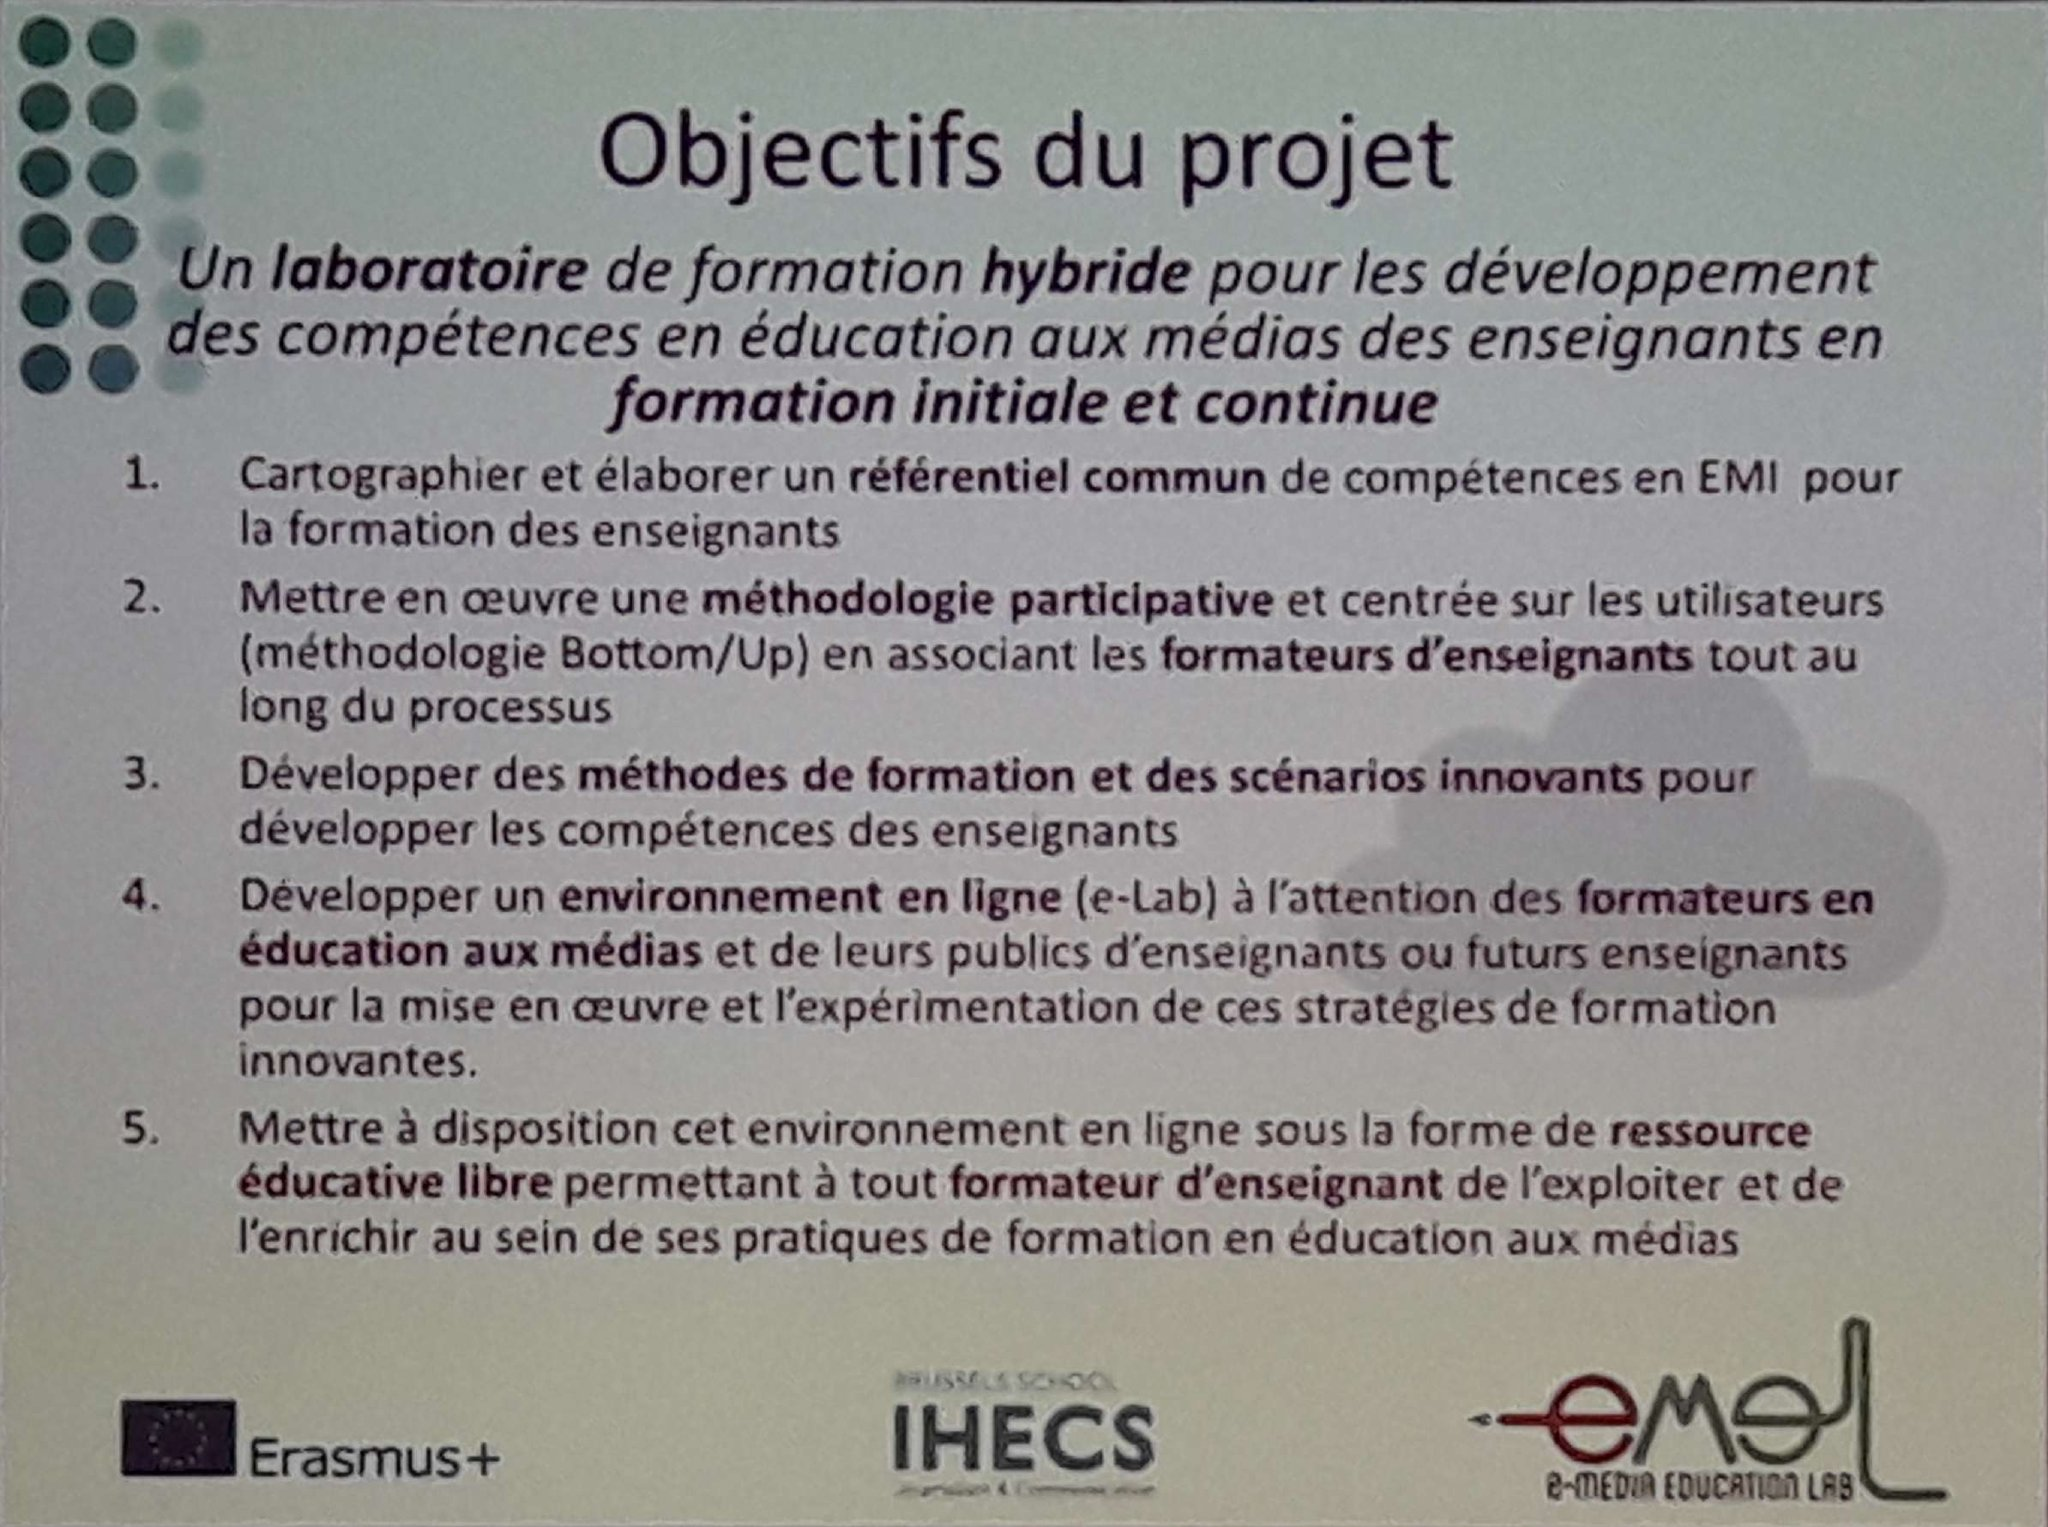 #emiconf2017 le projet de formation e-lab https://t.co/s0JHq8giow